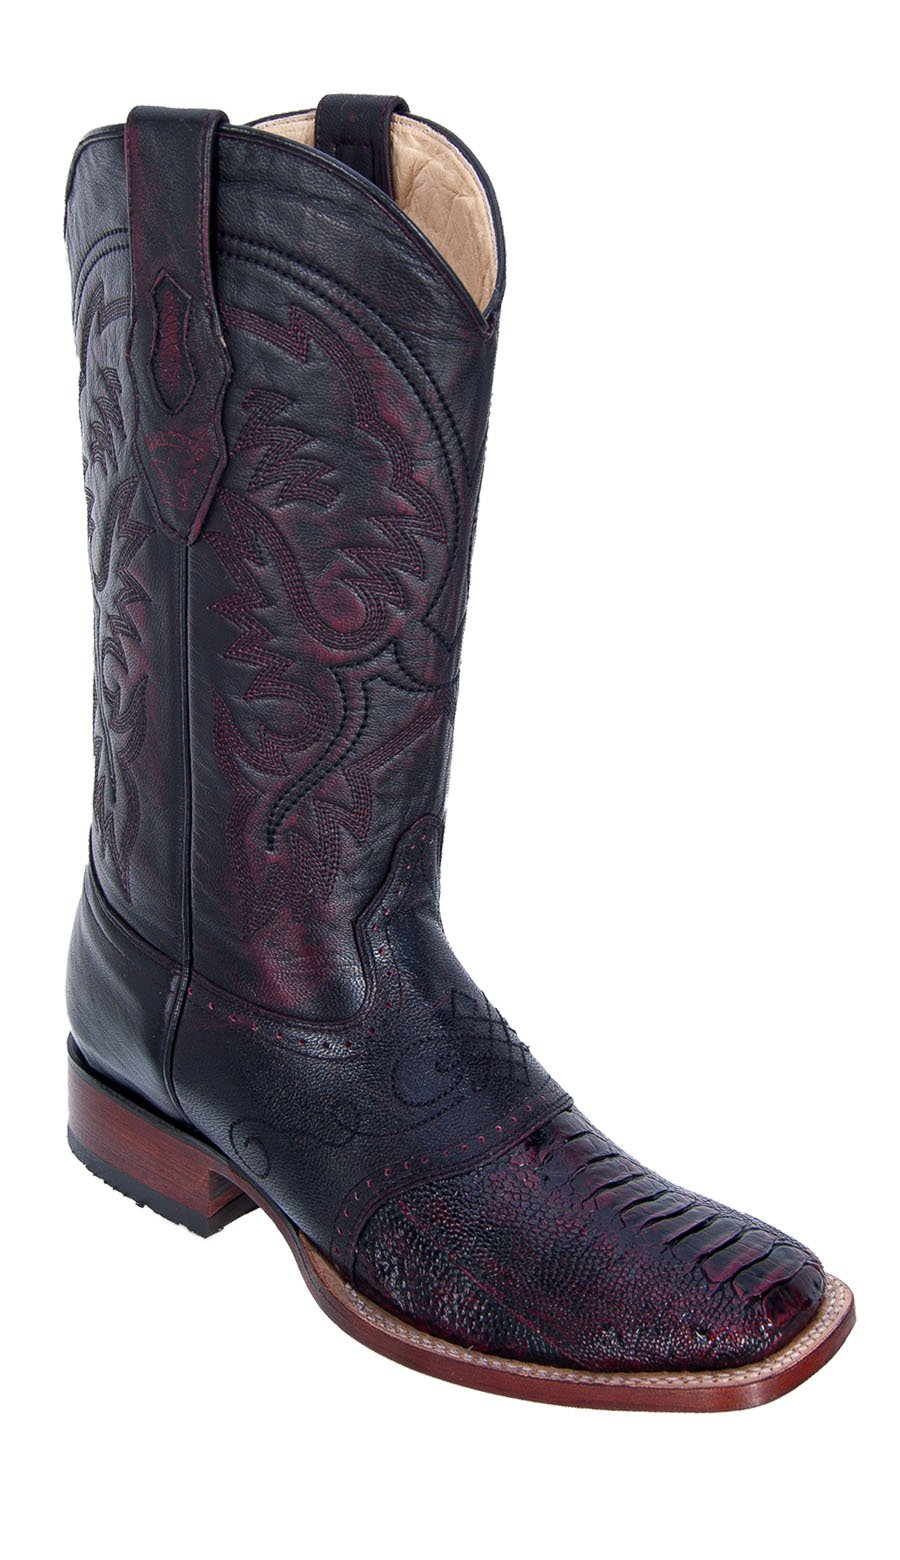 Men's Wide Square Toe Black Cherry Genuine Leather Ostrich Leg w/Saddle Skin Western Boots by Los Altos